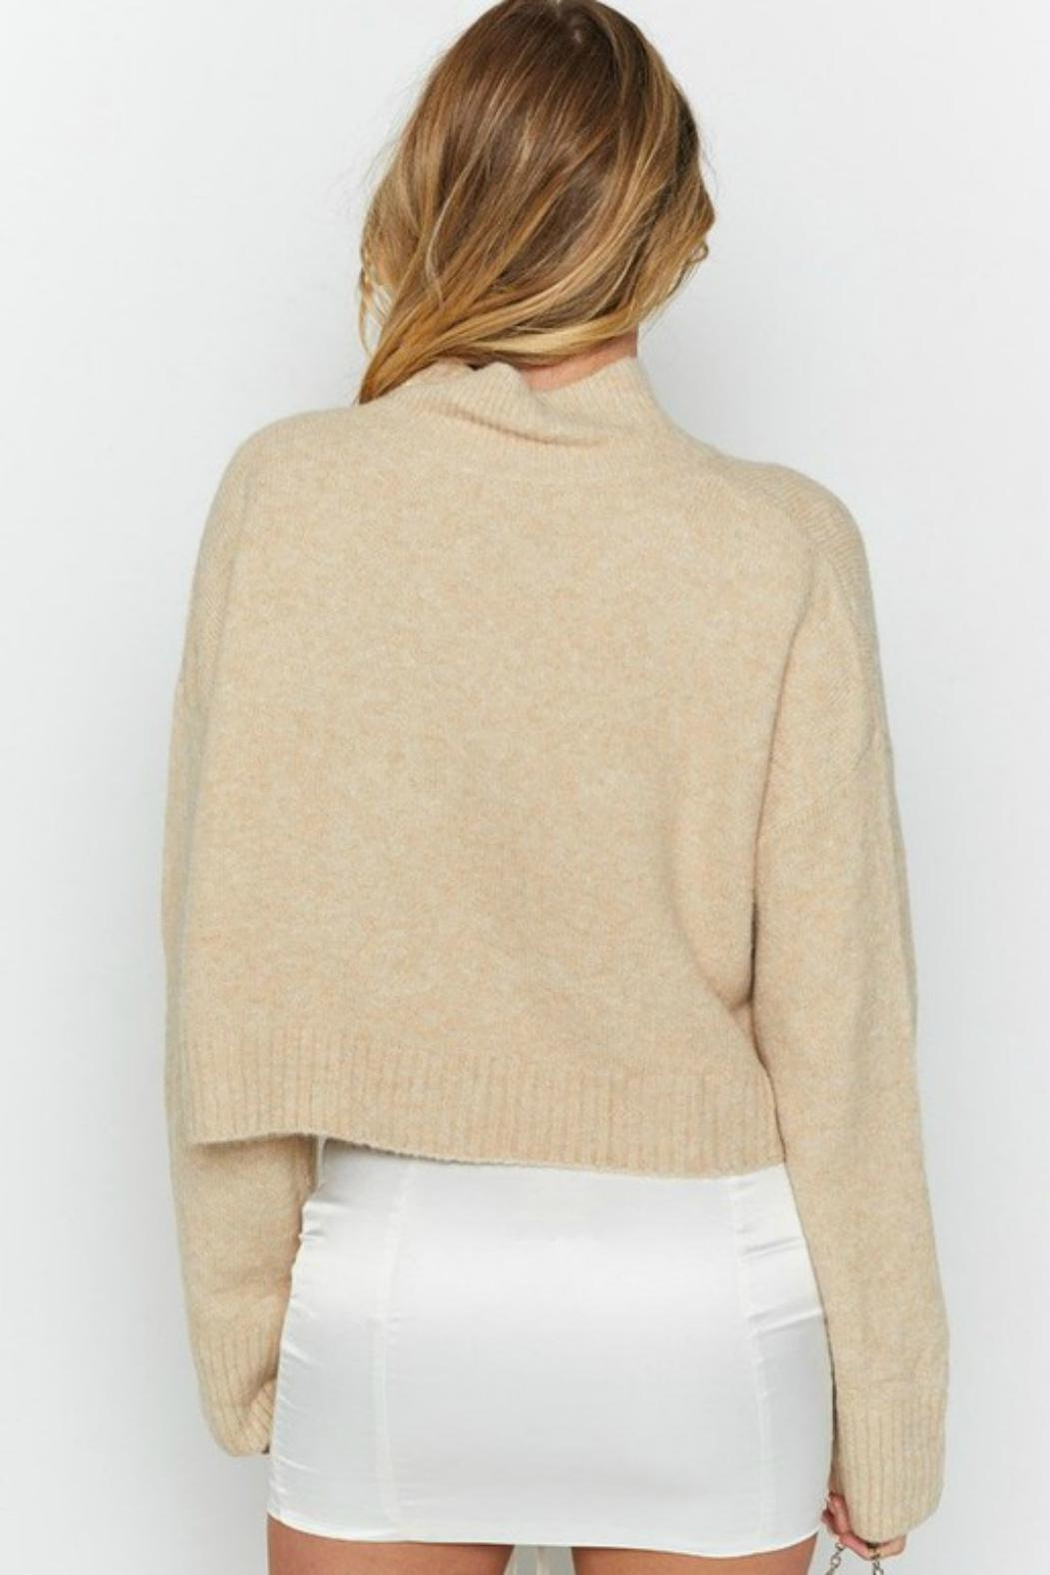 Pretty Little Things Cropped Sweater - Front Full Image